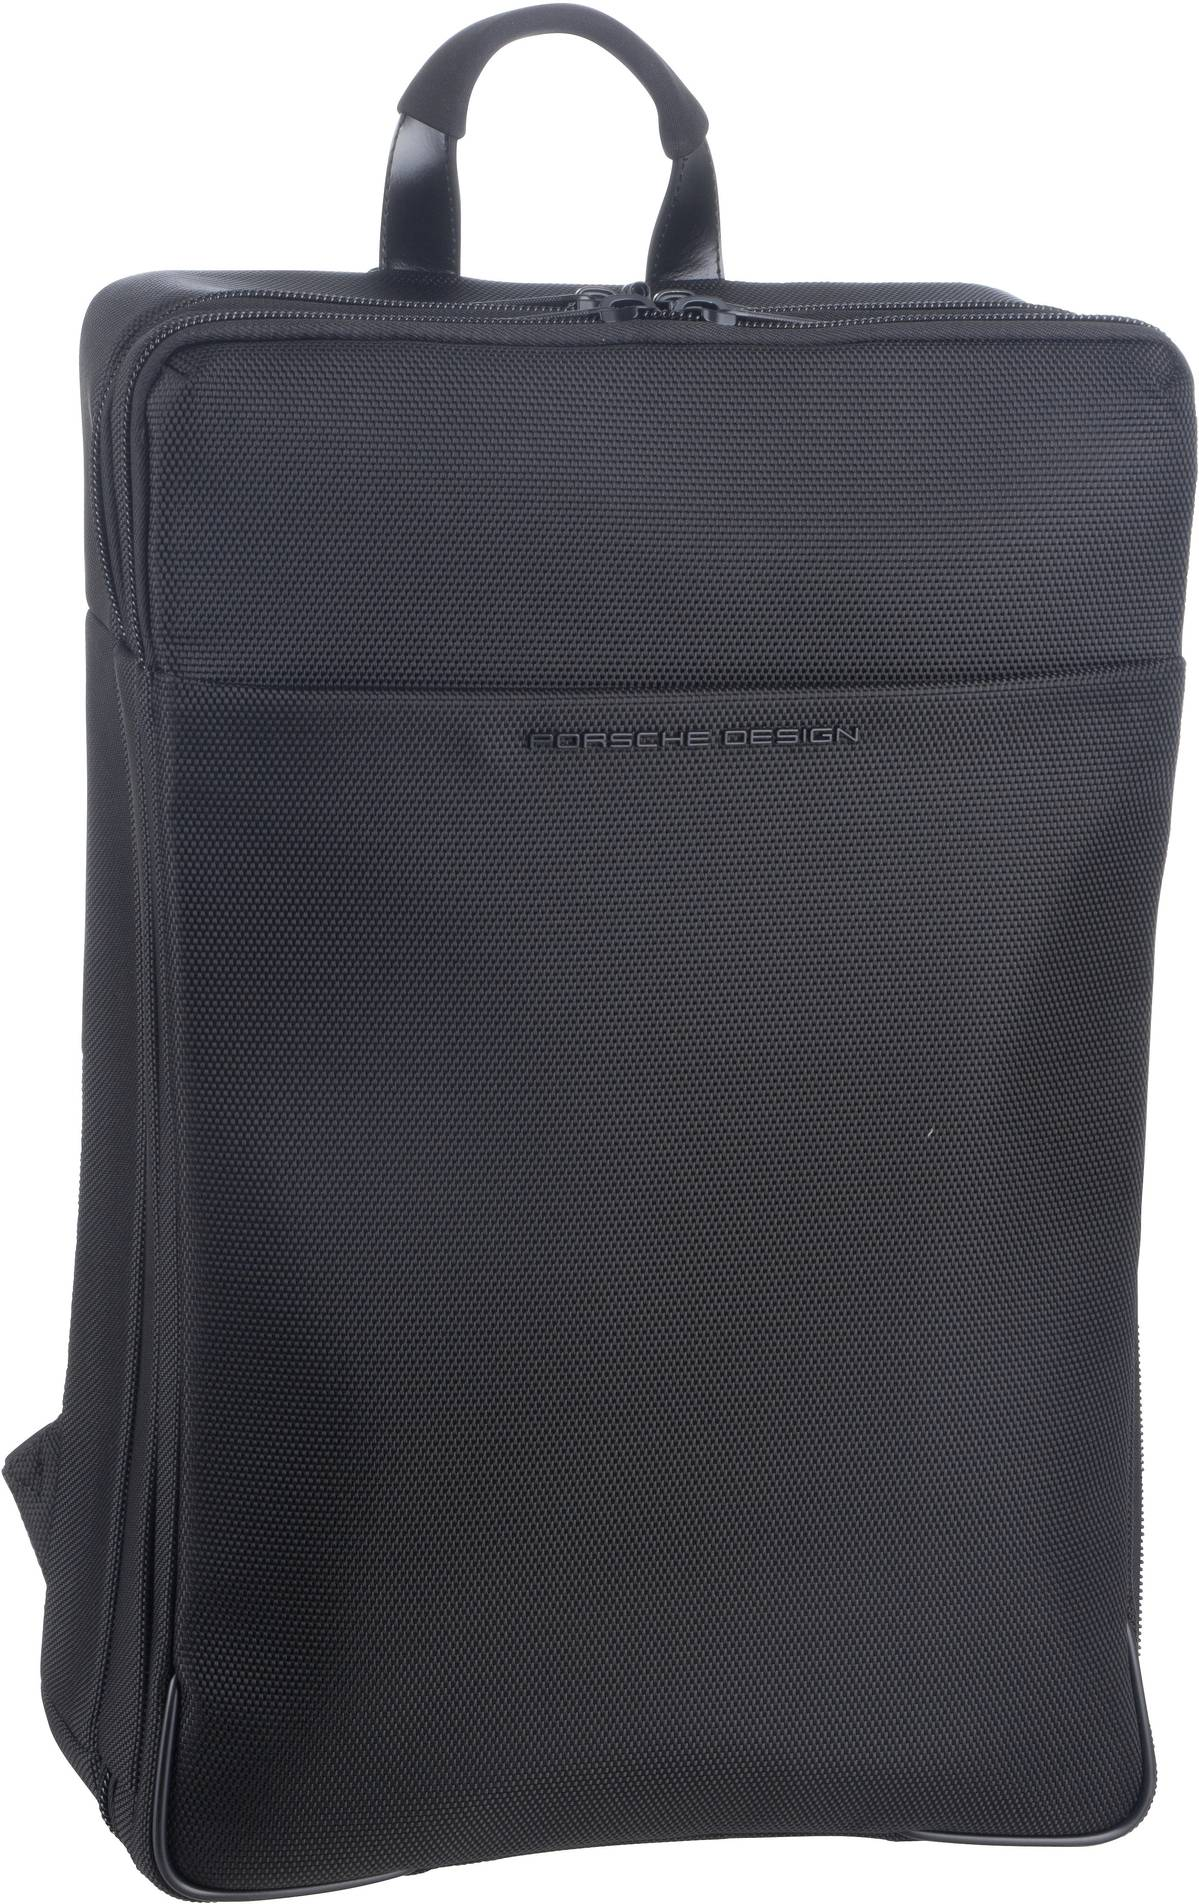 Rucksack / Daypack Roadster 4.1 BackPack XLVZ E Black